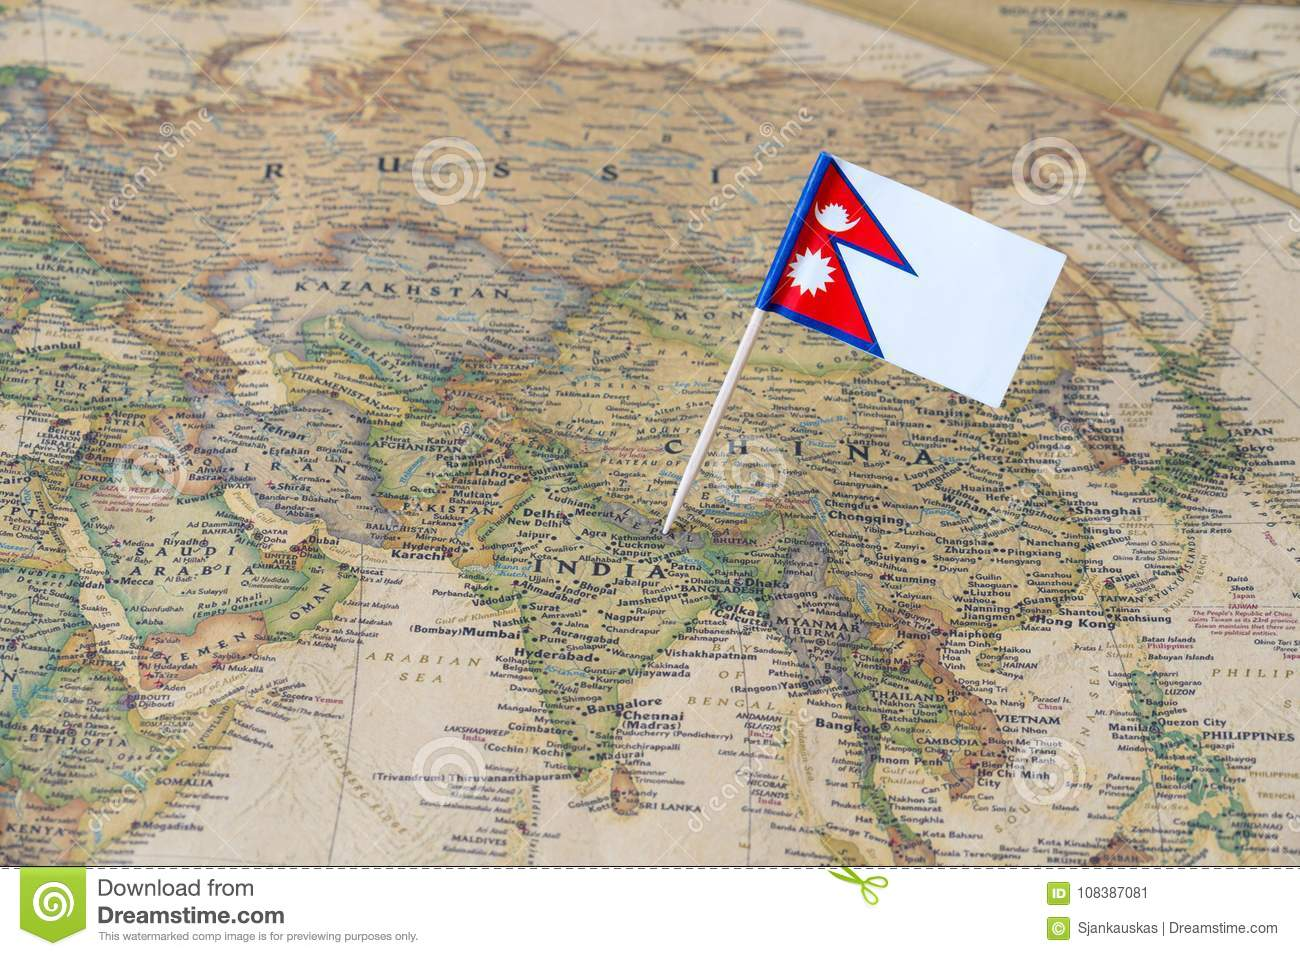 Nepal Flag Pin On A World Map Stock Image - Image of borders ...